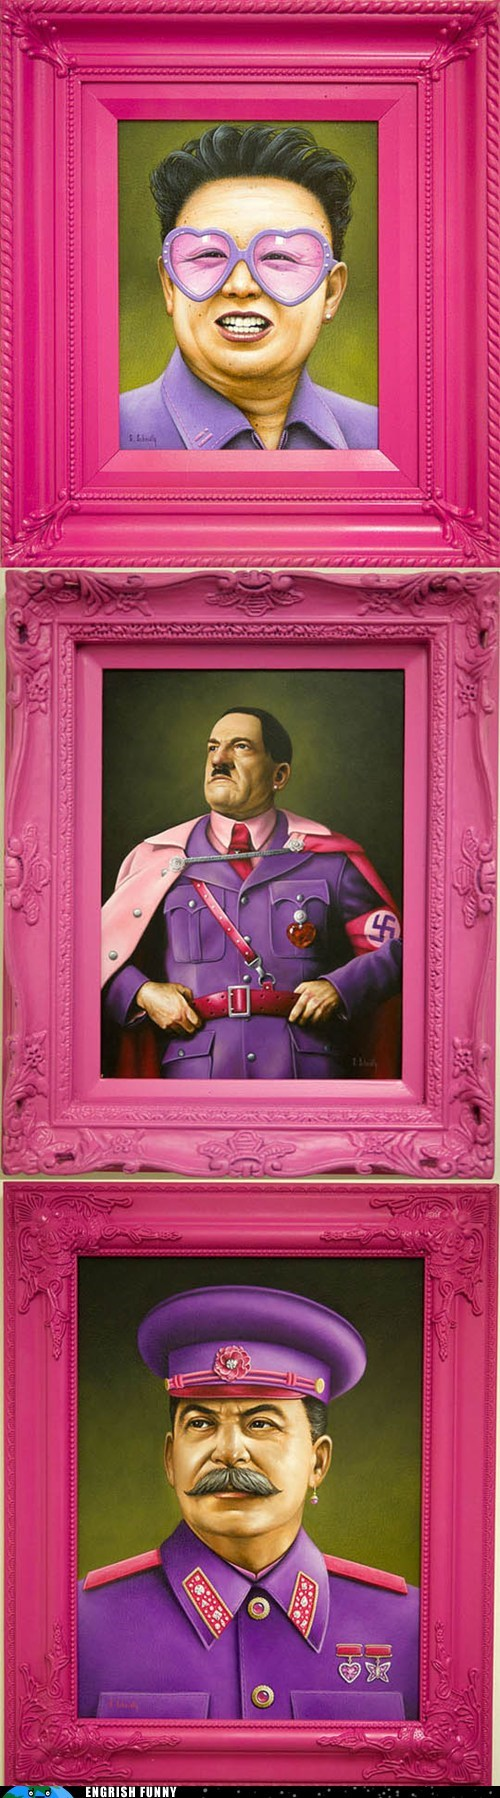 adolf hitler dictators fabulous gay gay pride Hall of Fame hitler joseph stalin Kim Jong-Il scott sheidly stalin - 6250406656